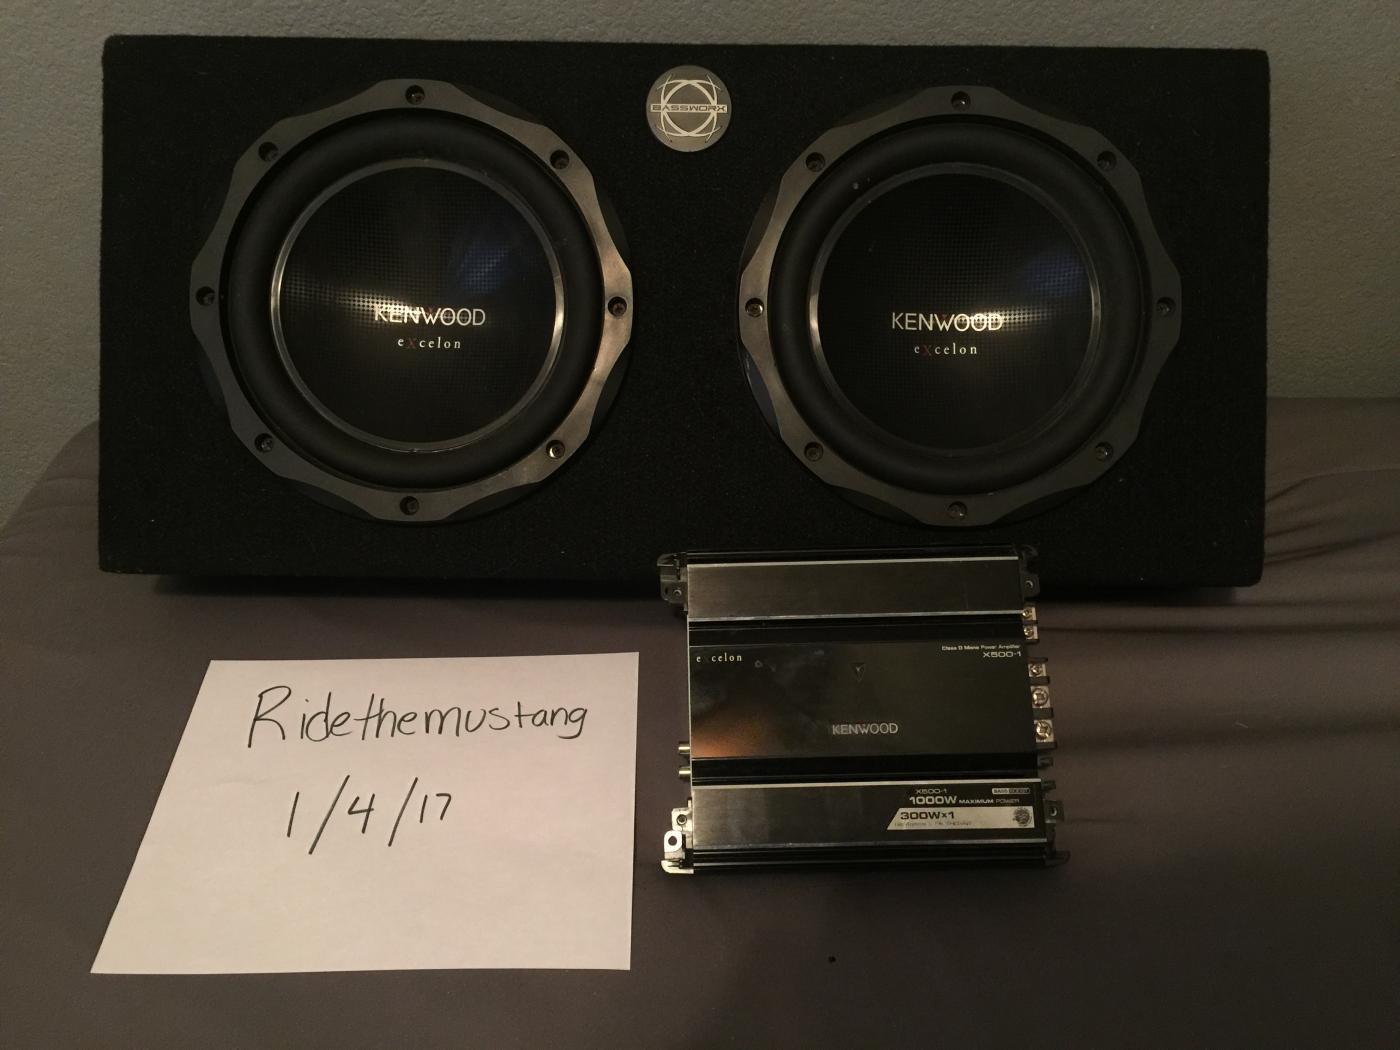 FS: Kenwood excelon subs/amp and bassworx box (Huge Price